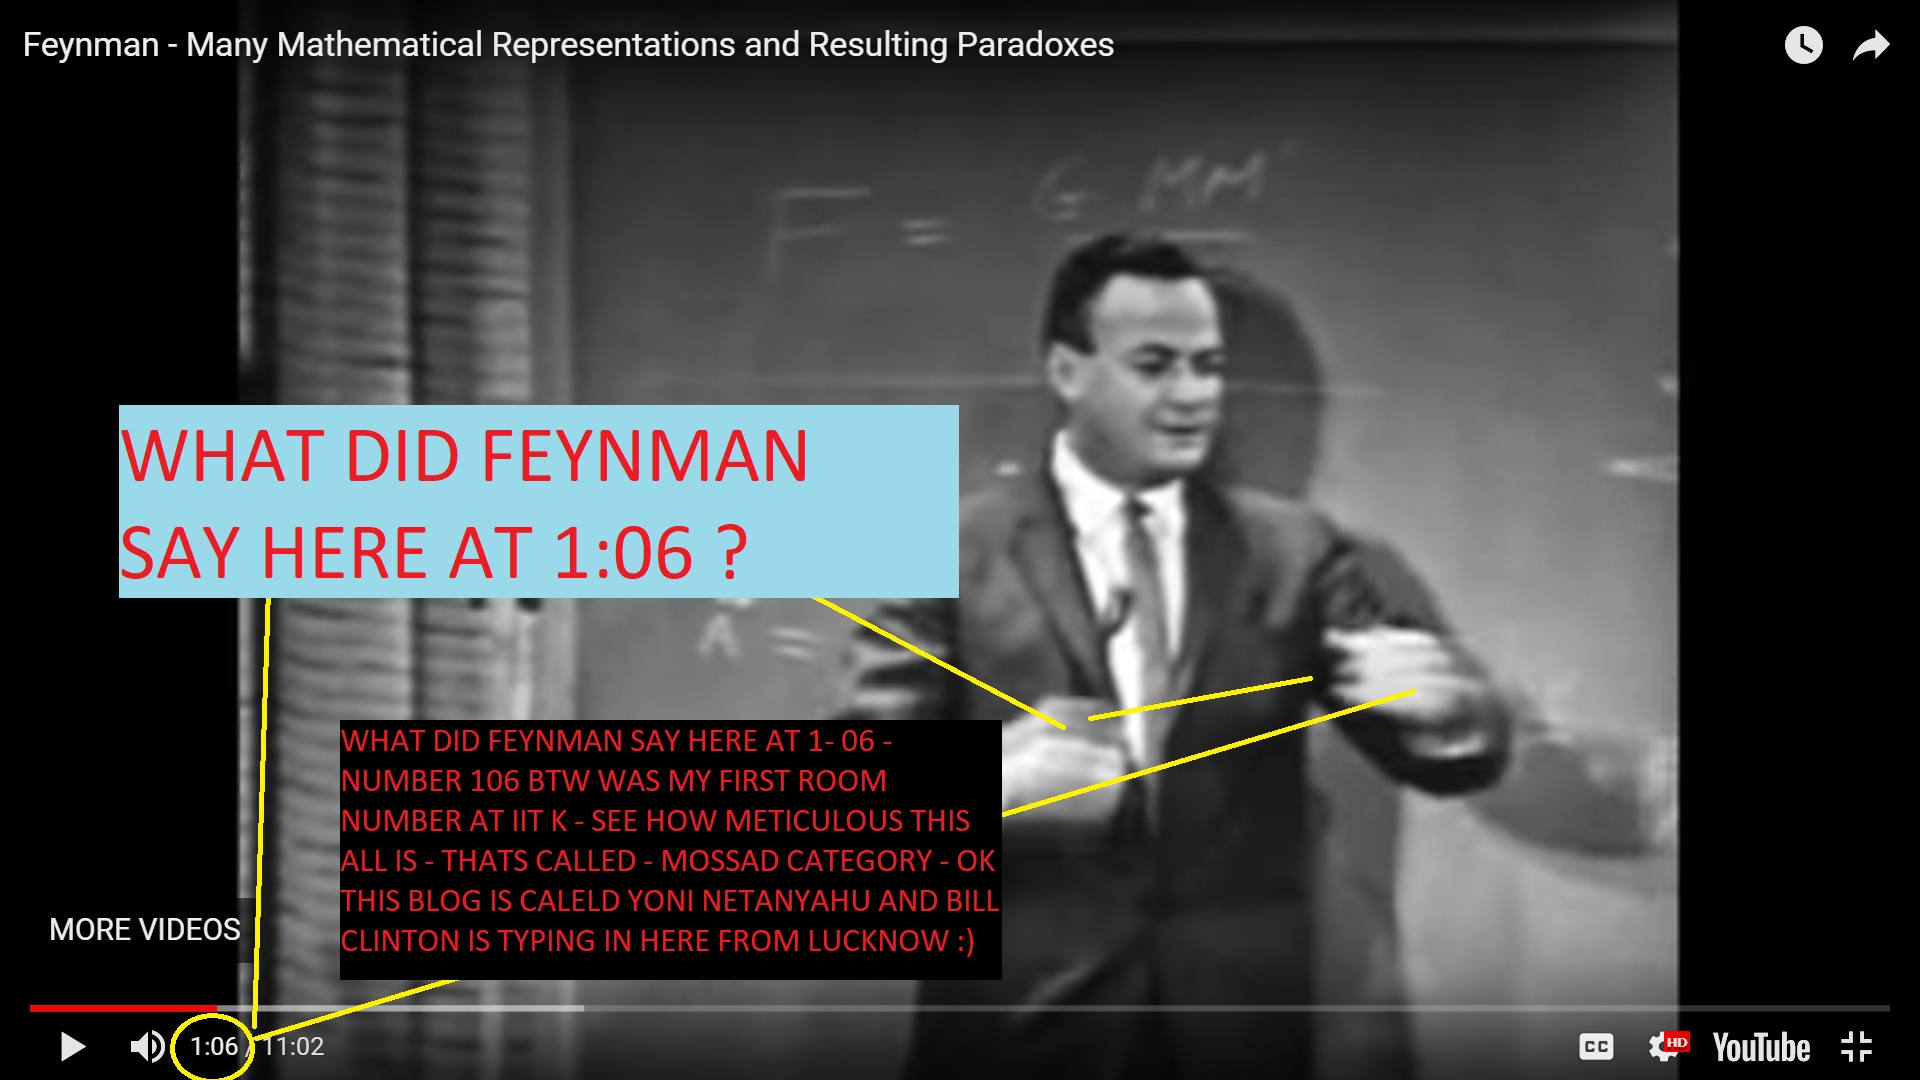 WHAT DID FEYNMAN SAY ON NUMBERS IN HERE AT 106